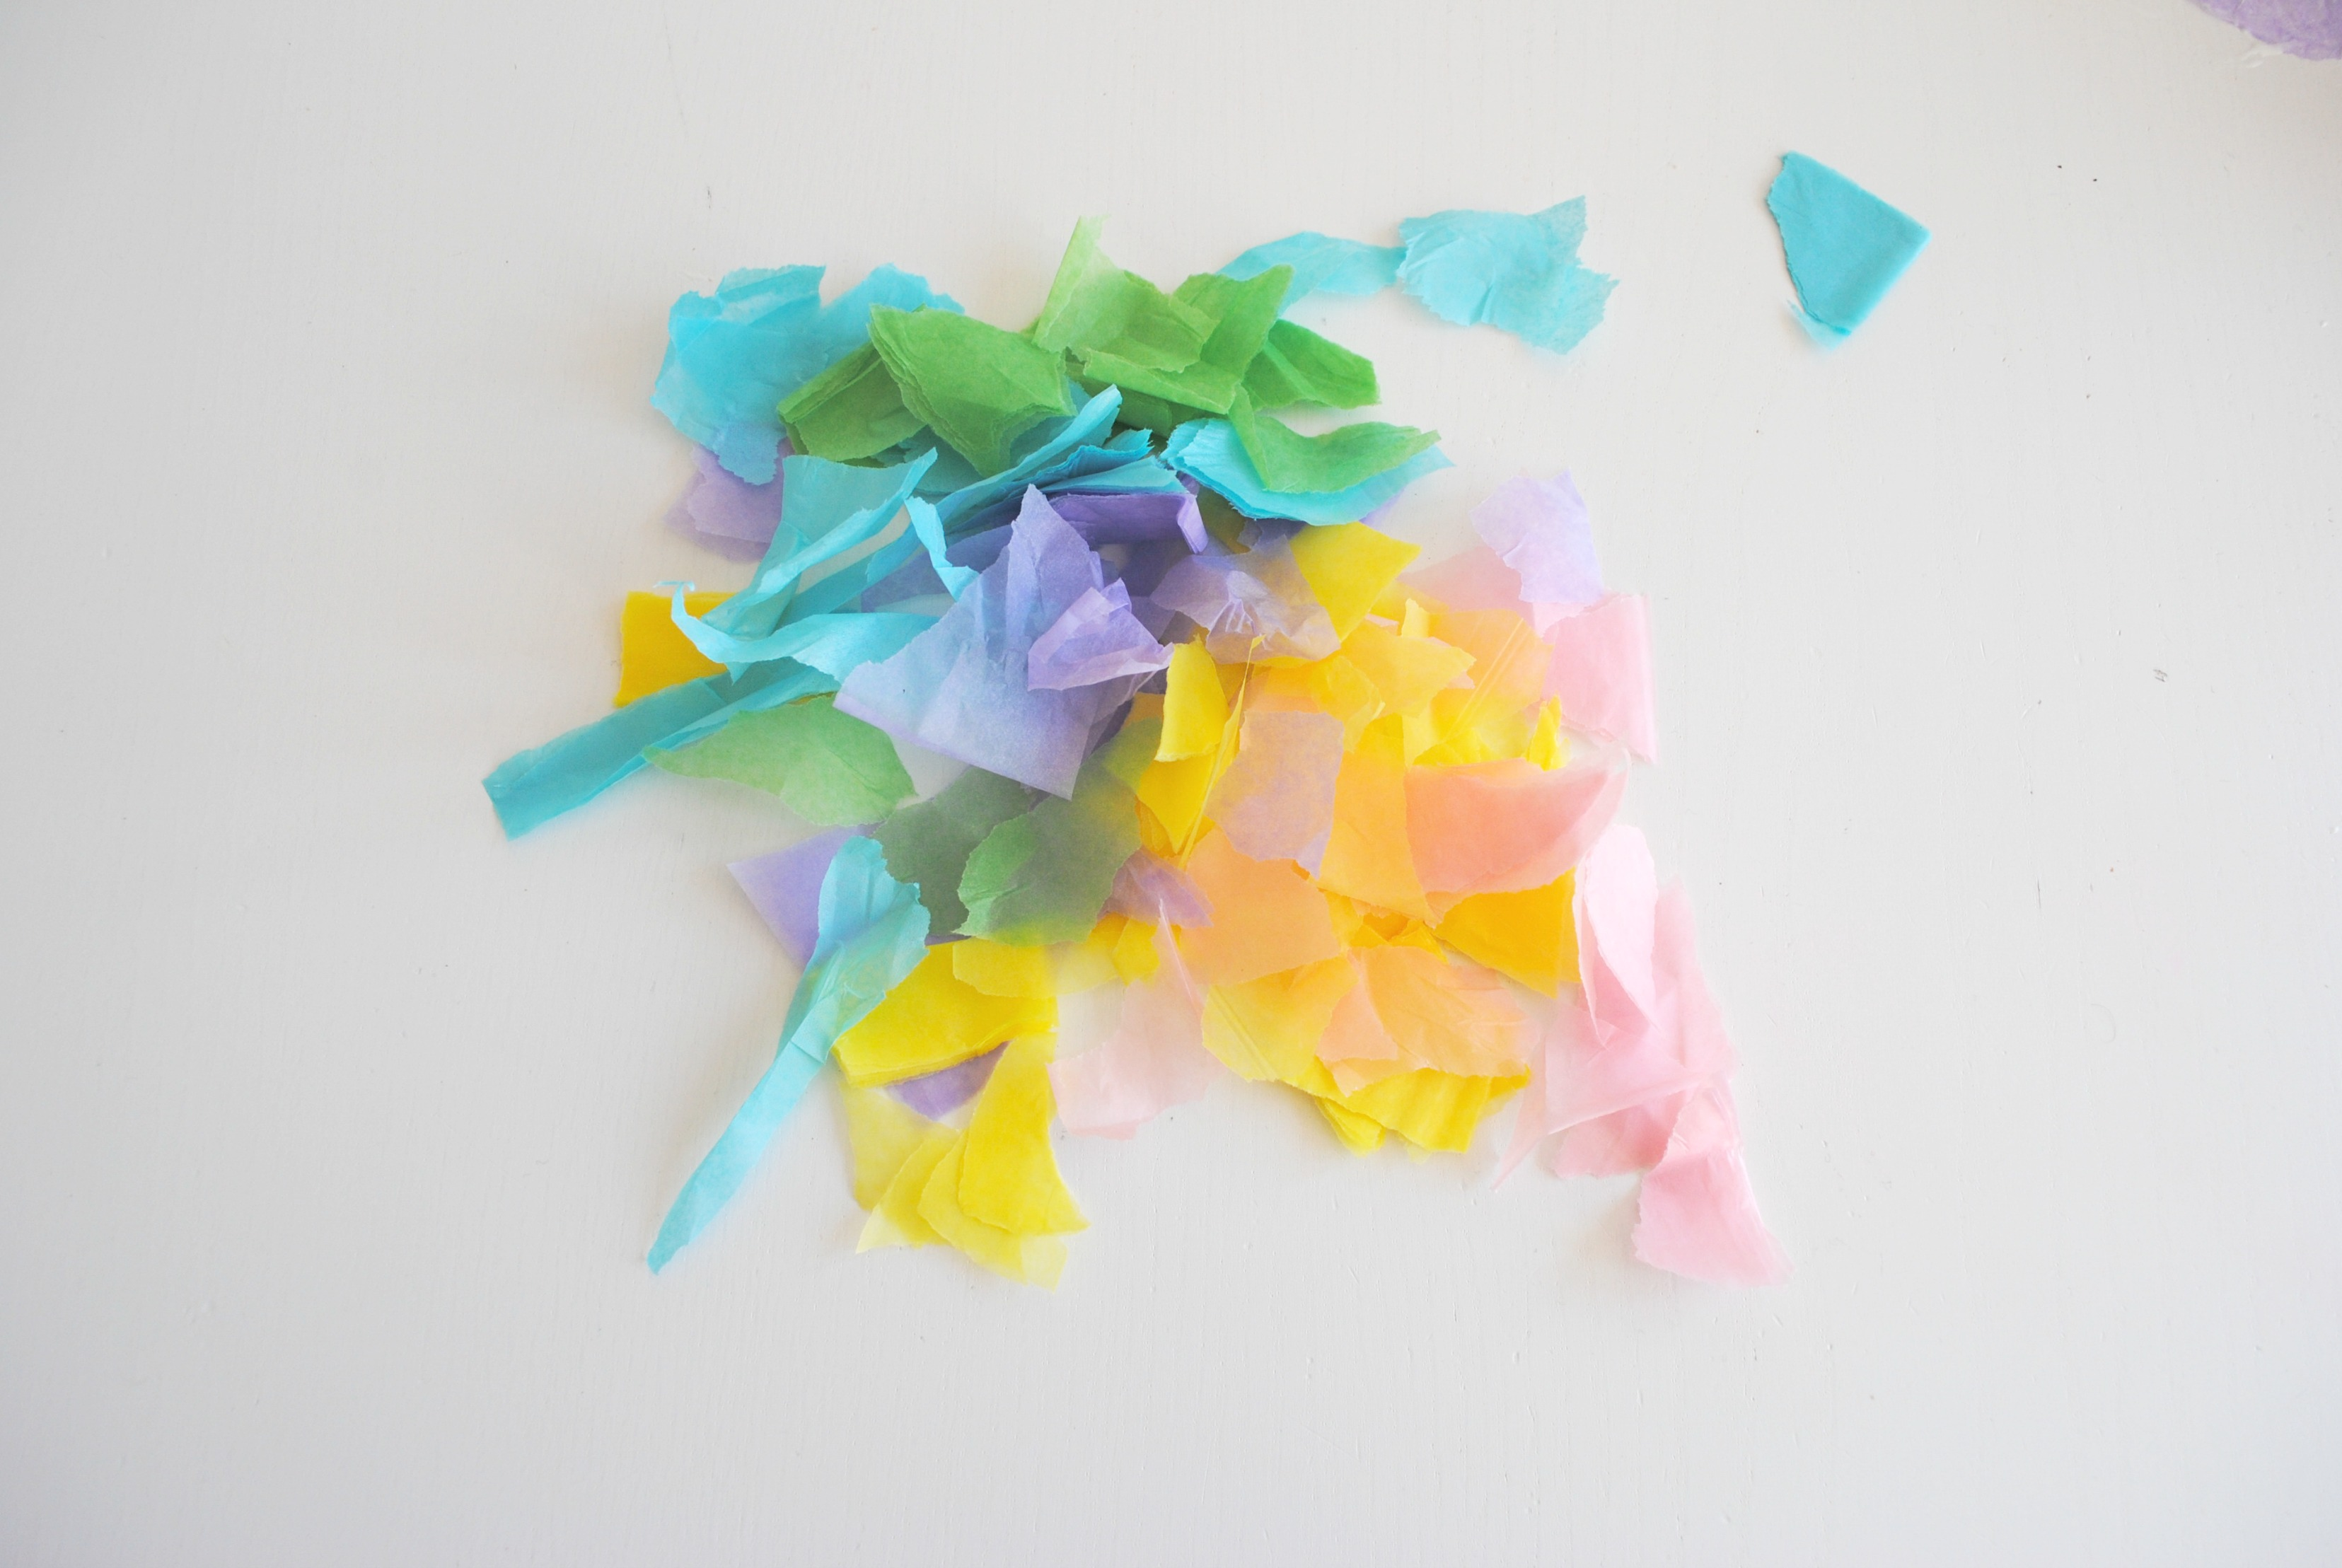 Tear fall colored construction paper into small pieces and glue - Tear Up Or Help Your Toddler Tear Up The Pieces Of Tissue Paper Into Small Bits